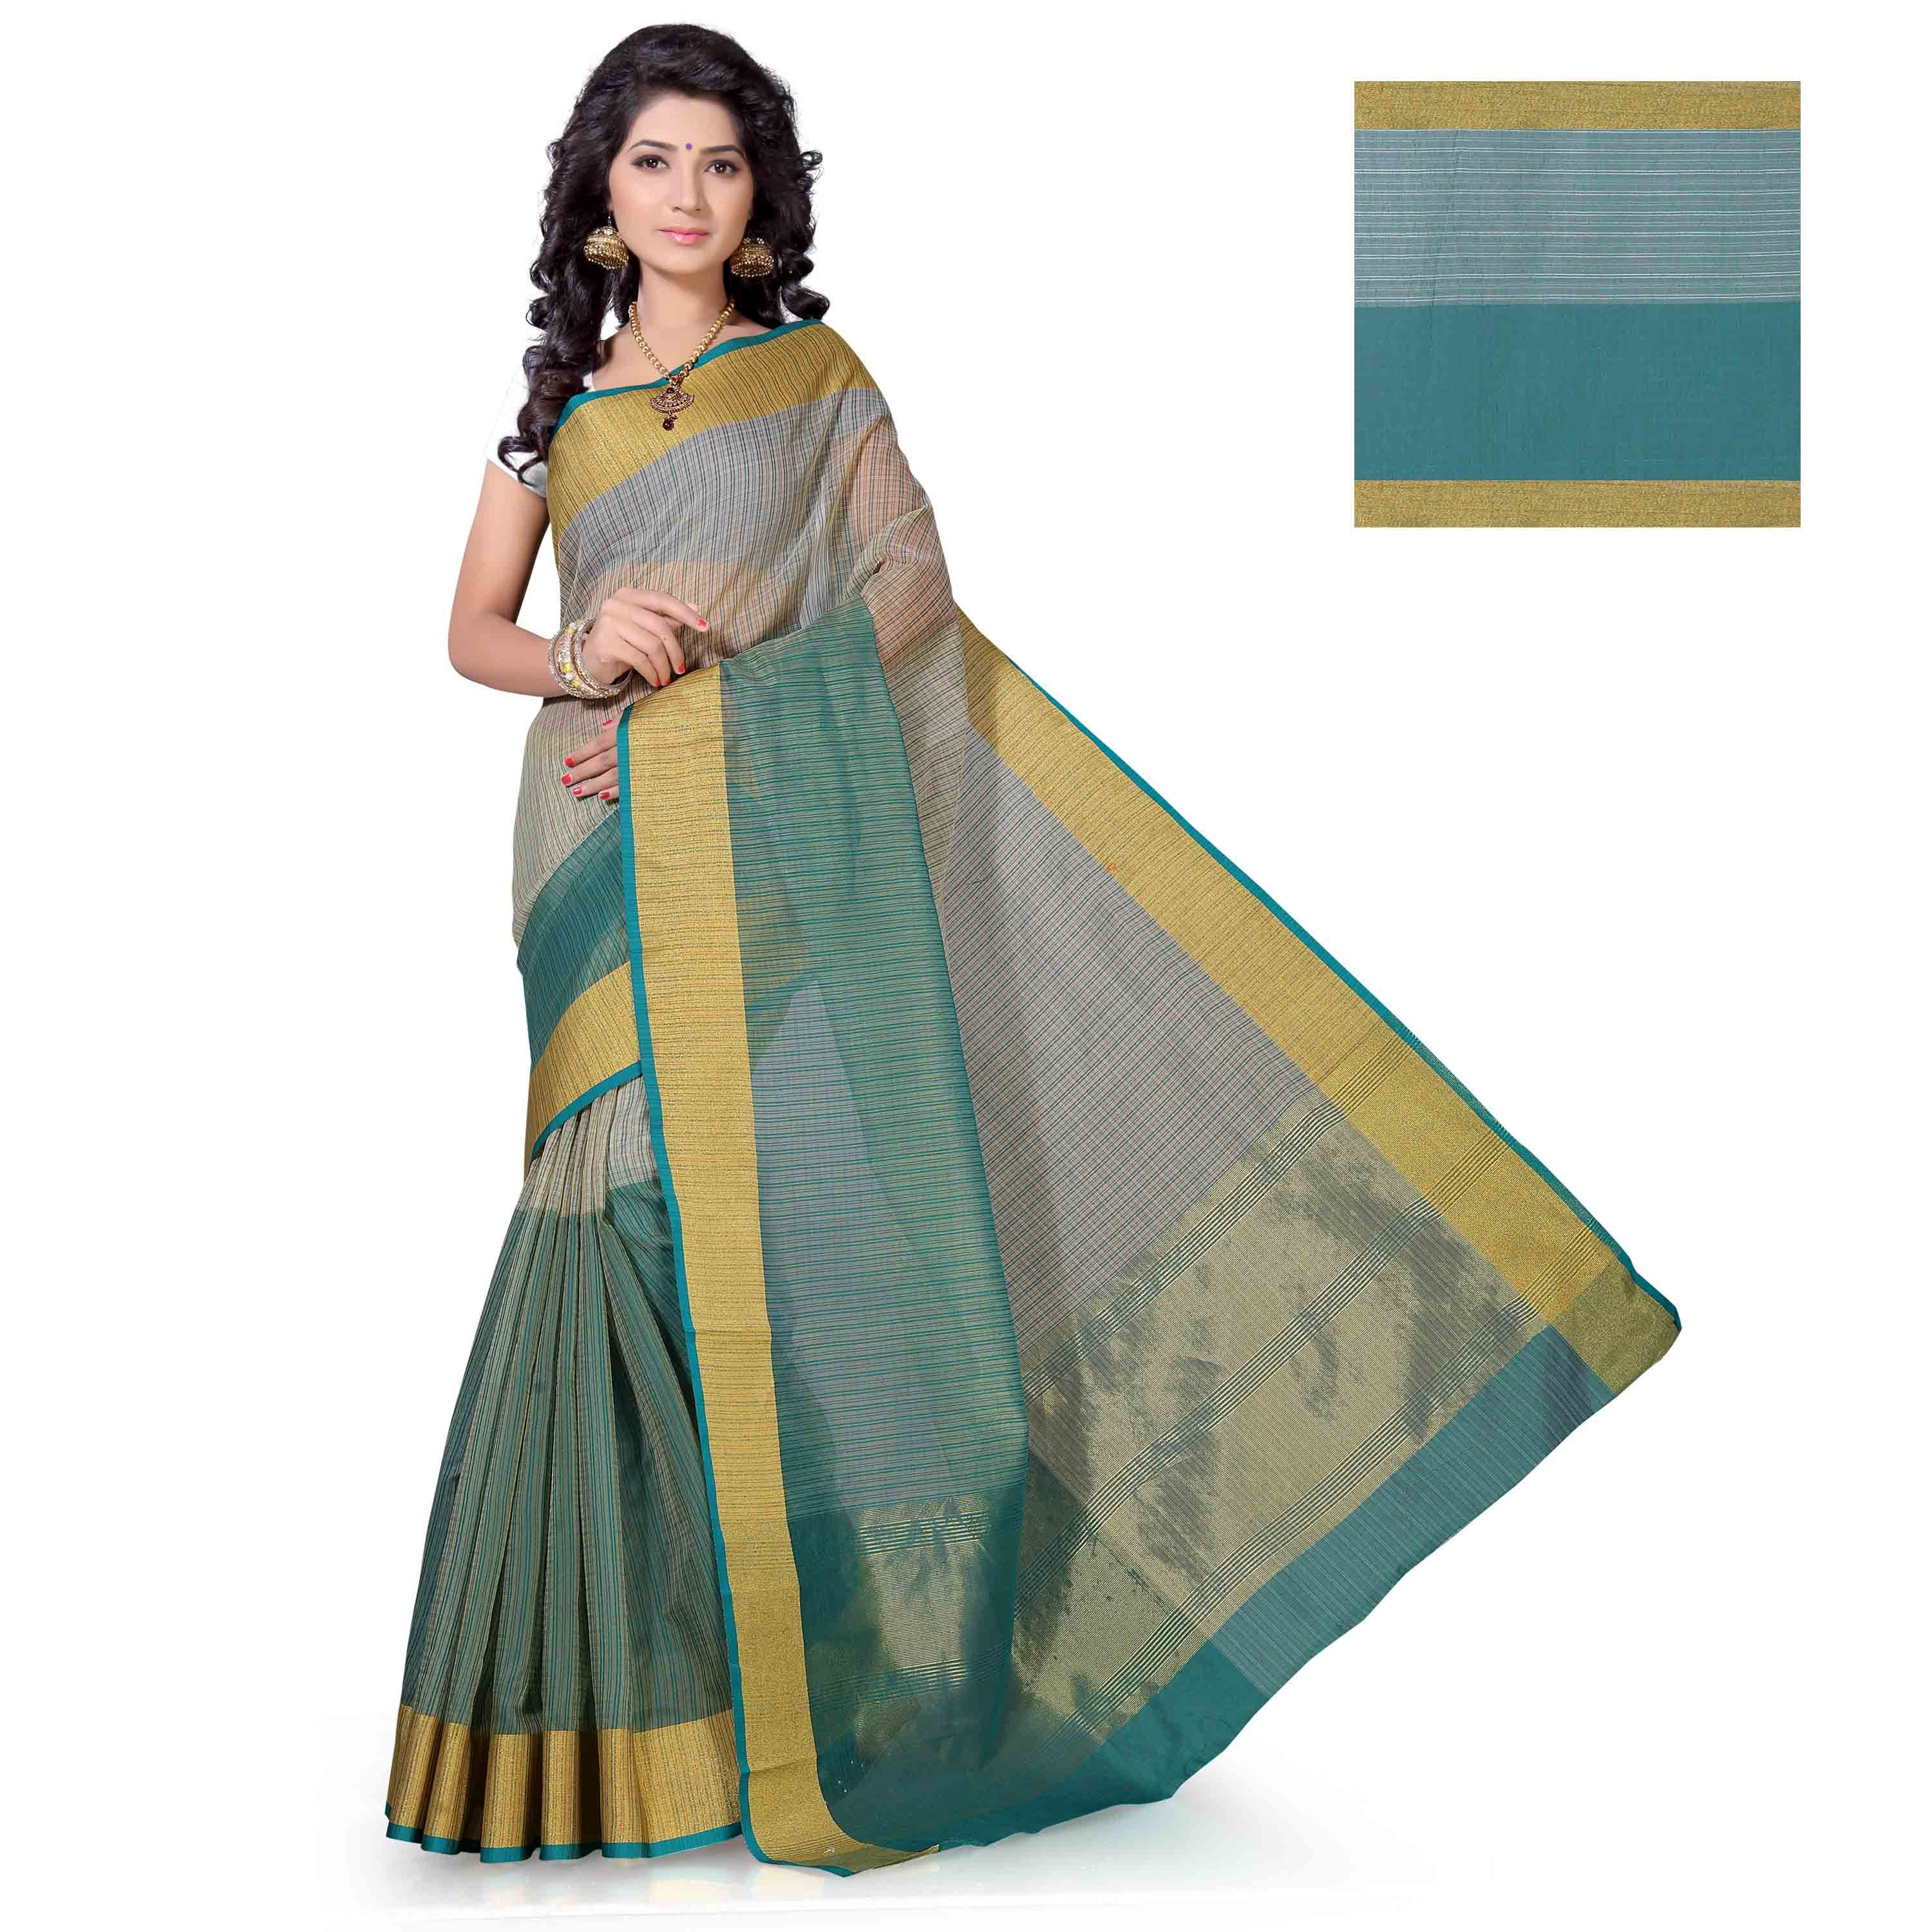 Kanchipuram Mungi Checks Half and Half Polycotton Saree